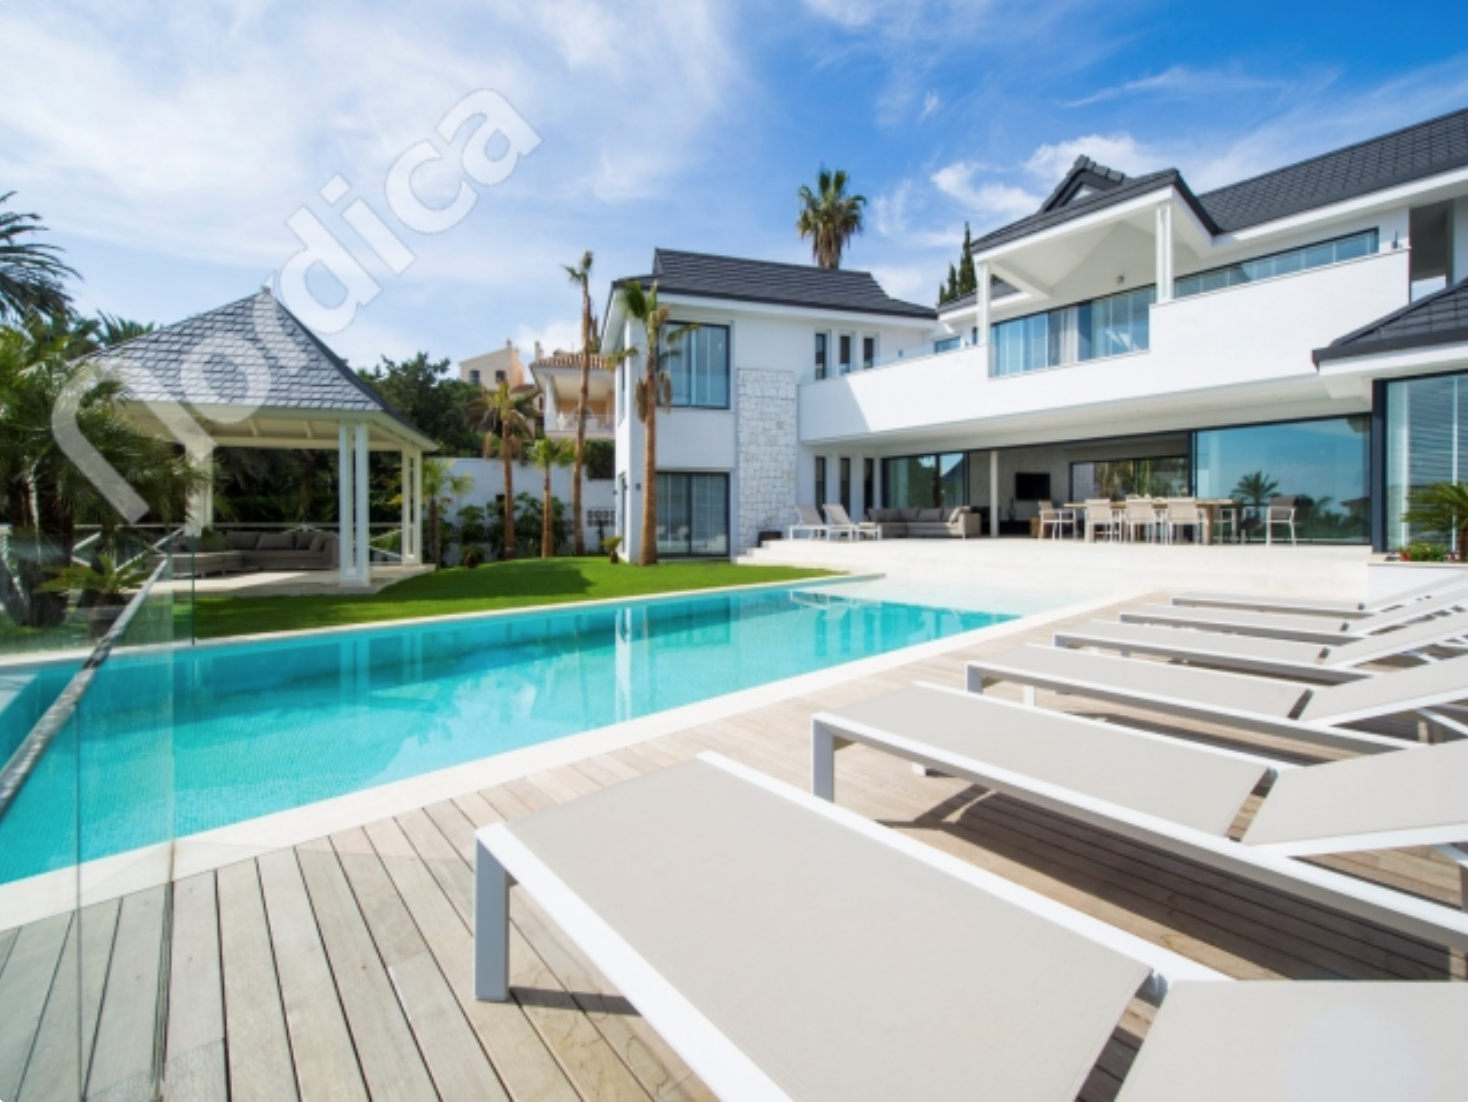 nordica sales and rentals marbella